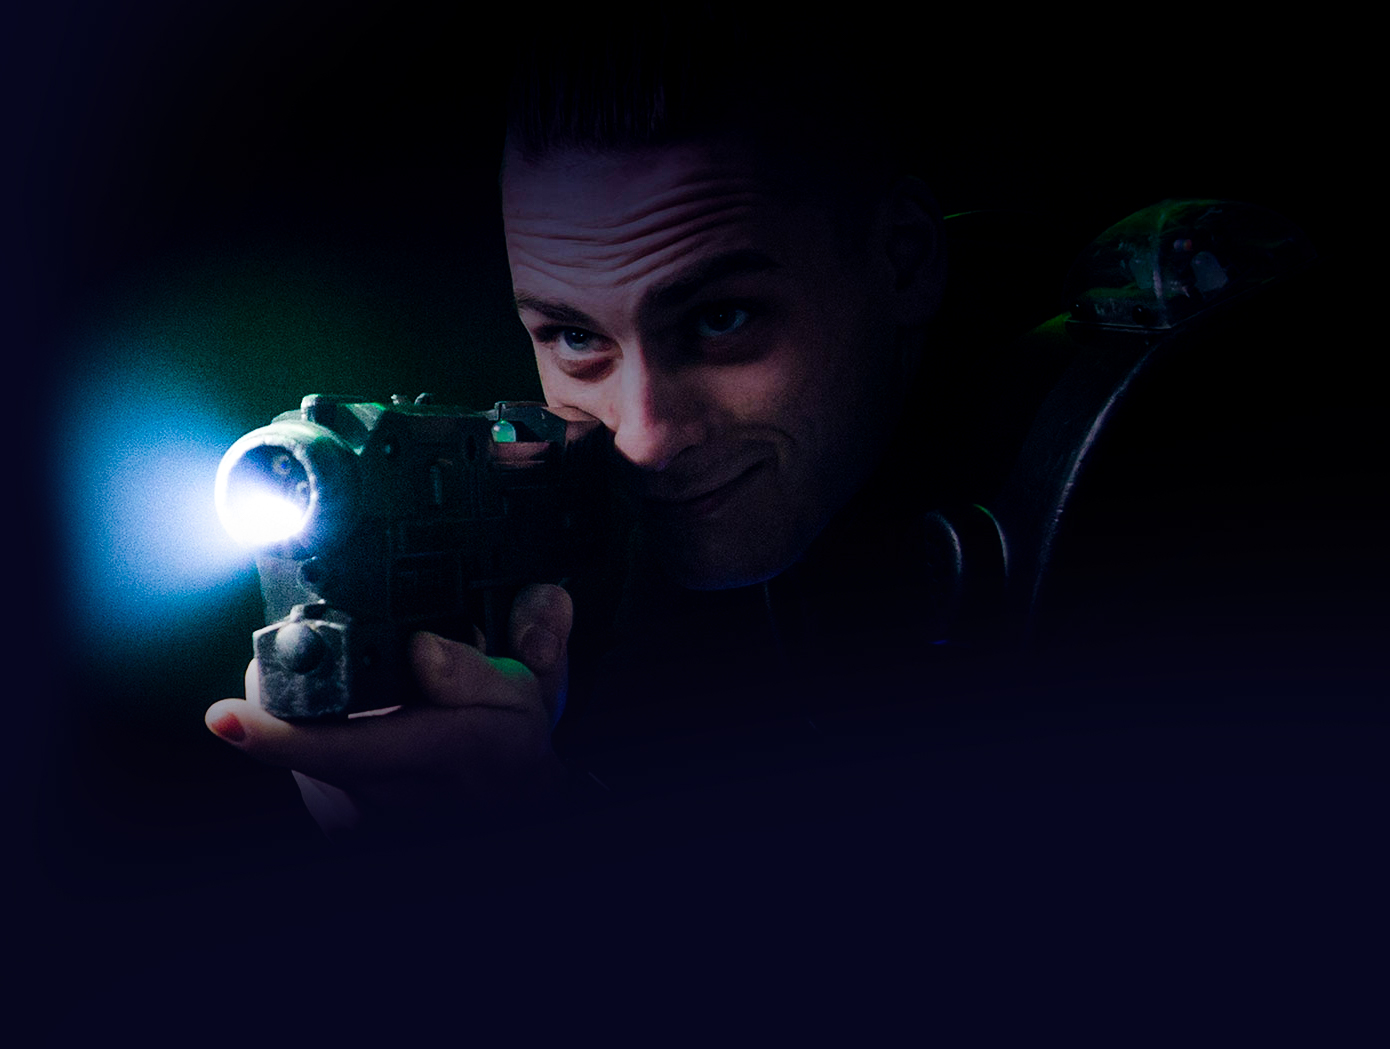 Lasergamen - Lasergamen Leidsche Rijn - Lasergamen Maarssen - Lasergamen Utrecht - Uitje Karten - Indoor Kartbaan - Kartbaan Utrecht - Kartcircuit Utrecht - Langste Indoor Kartbaan - Prison Break Utrecht - Prison Escape Utrecht - Prison Island - Prison Island Utrecht - Prison Utrecht - Escape Room - Escape Room Maarssen - Escape Room Utrecht - Escape Room Leidsche Rijn - Fort Boyard Utrecht